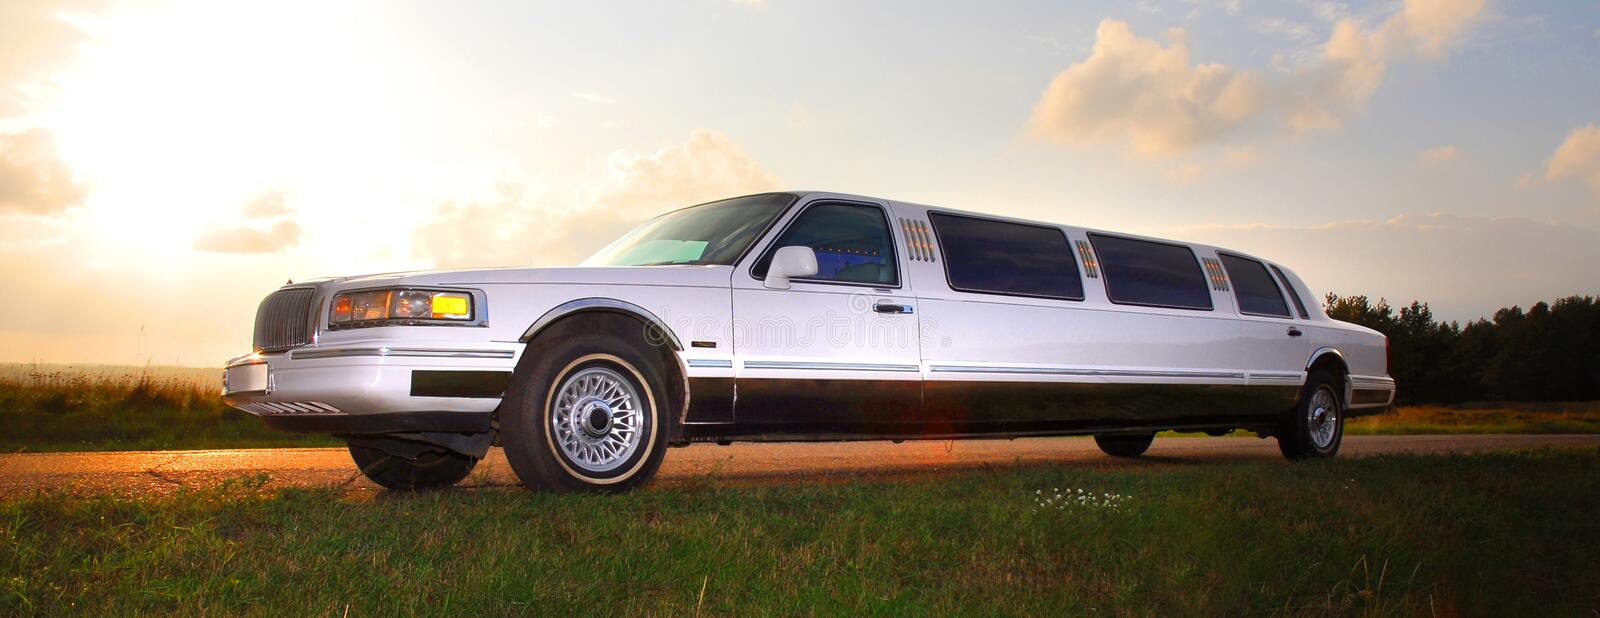 Limousine. Wedding White Limousine in the Sunset royalty free stock images